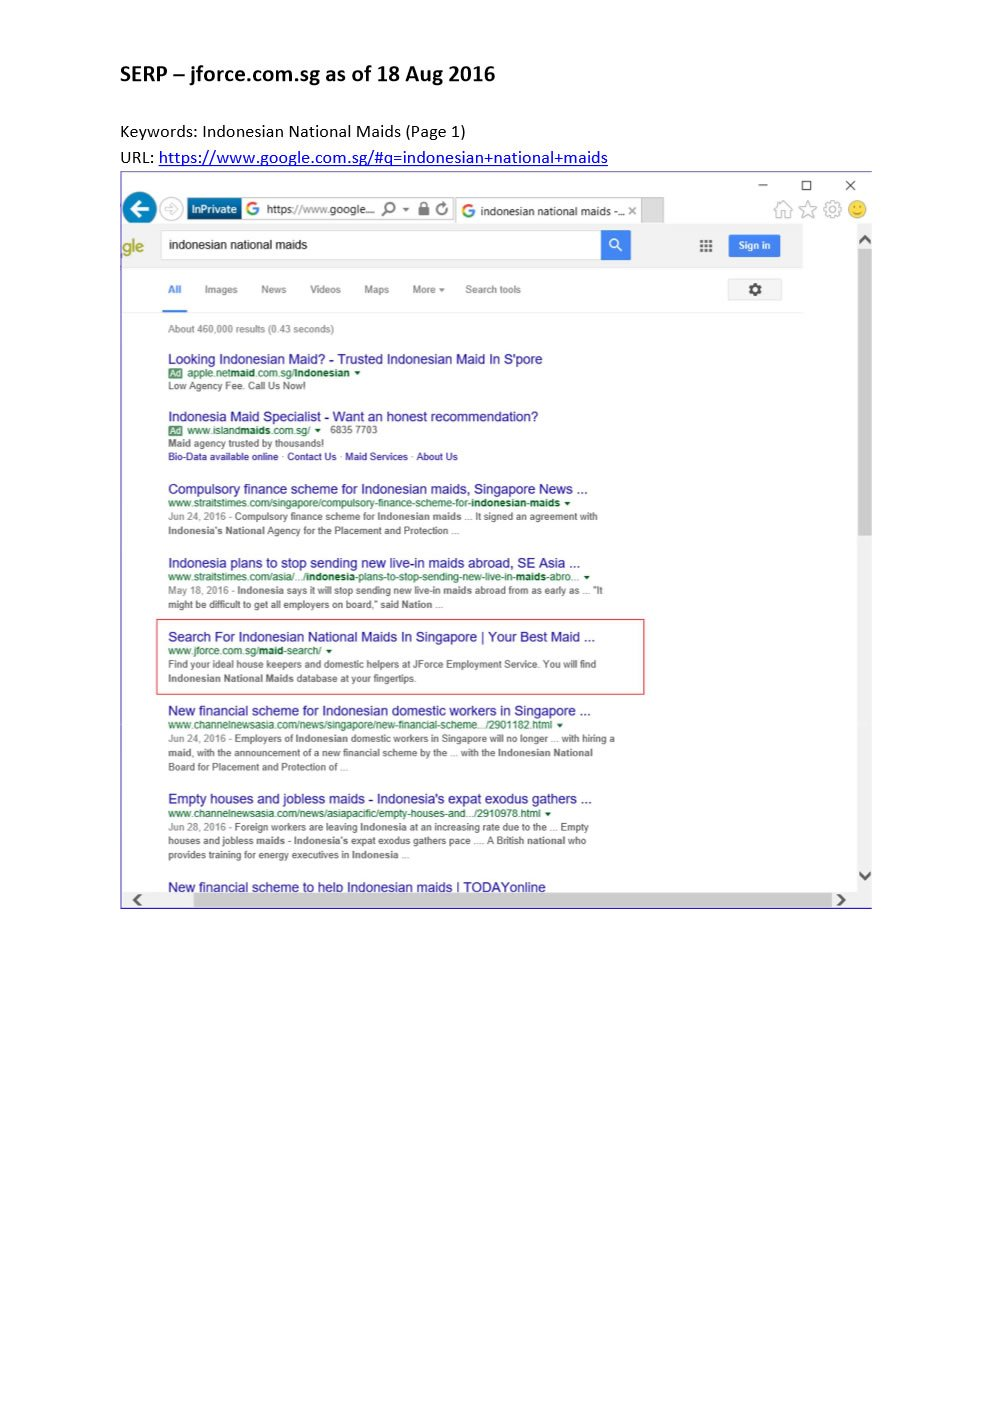 Google Ranking on Page 1